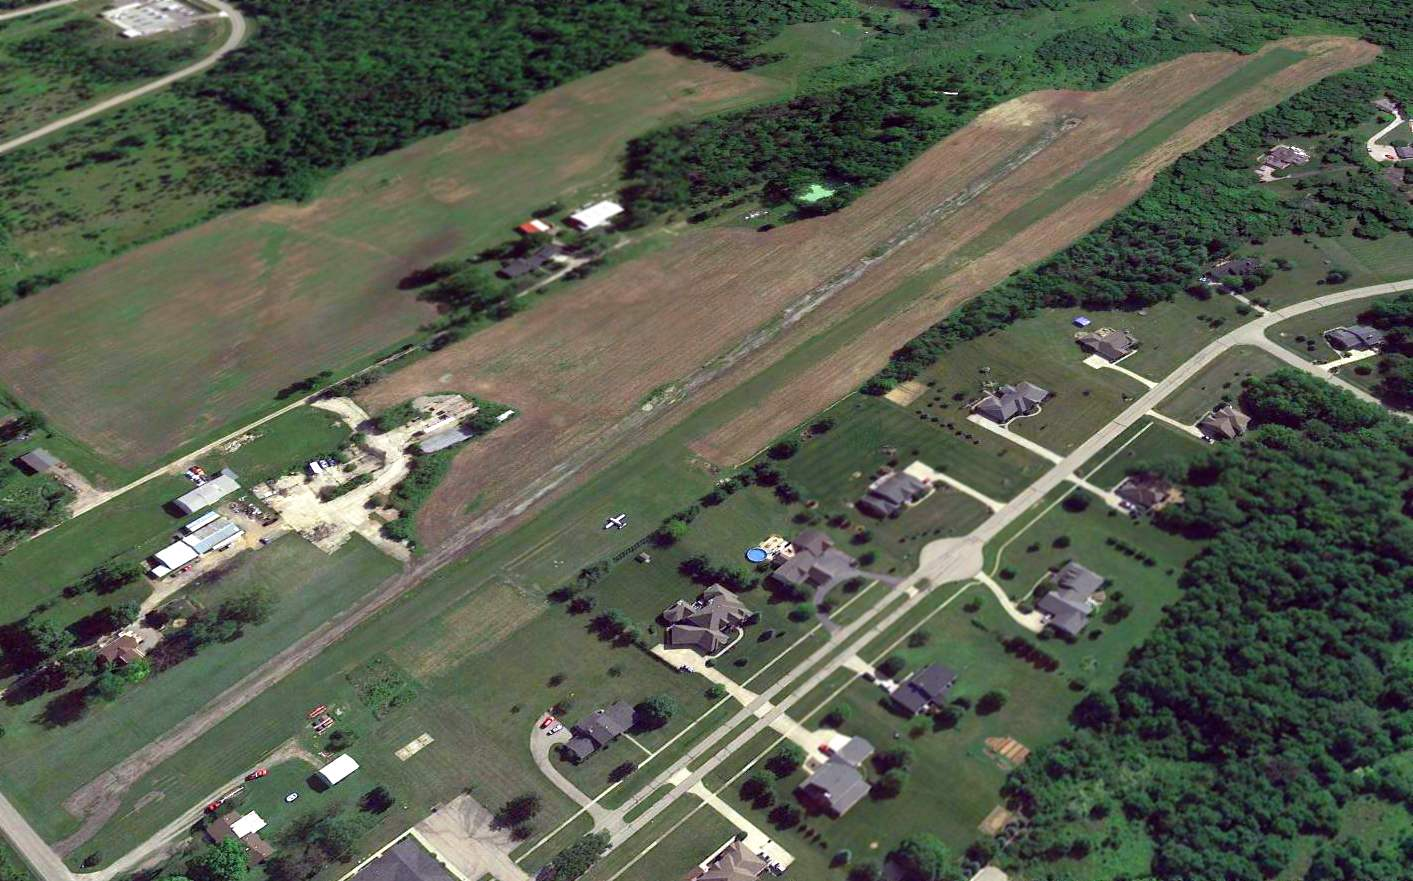 Abandoned Little Known Airfields Southwestern Ohio 1972 Amc Javelin Wiring Diagram A Circa 2014 2016 Photo Looking East At Brownies Lebanon Airport Showed The Deteriorated Asphalt Runway